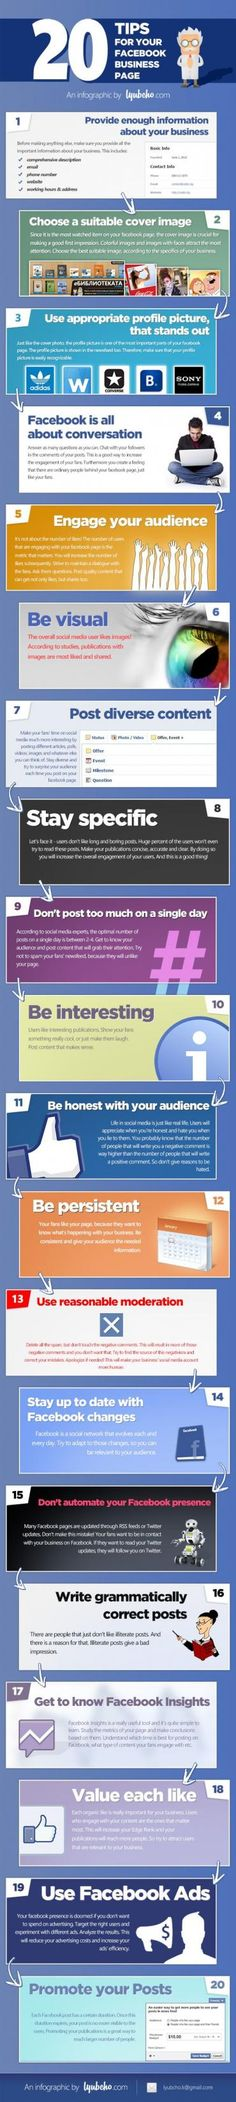 Infographic: 20 tips for your Facebook business page | MyCustomer